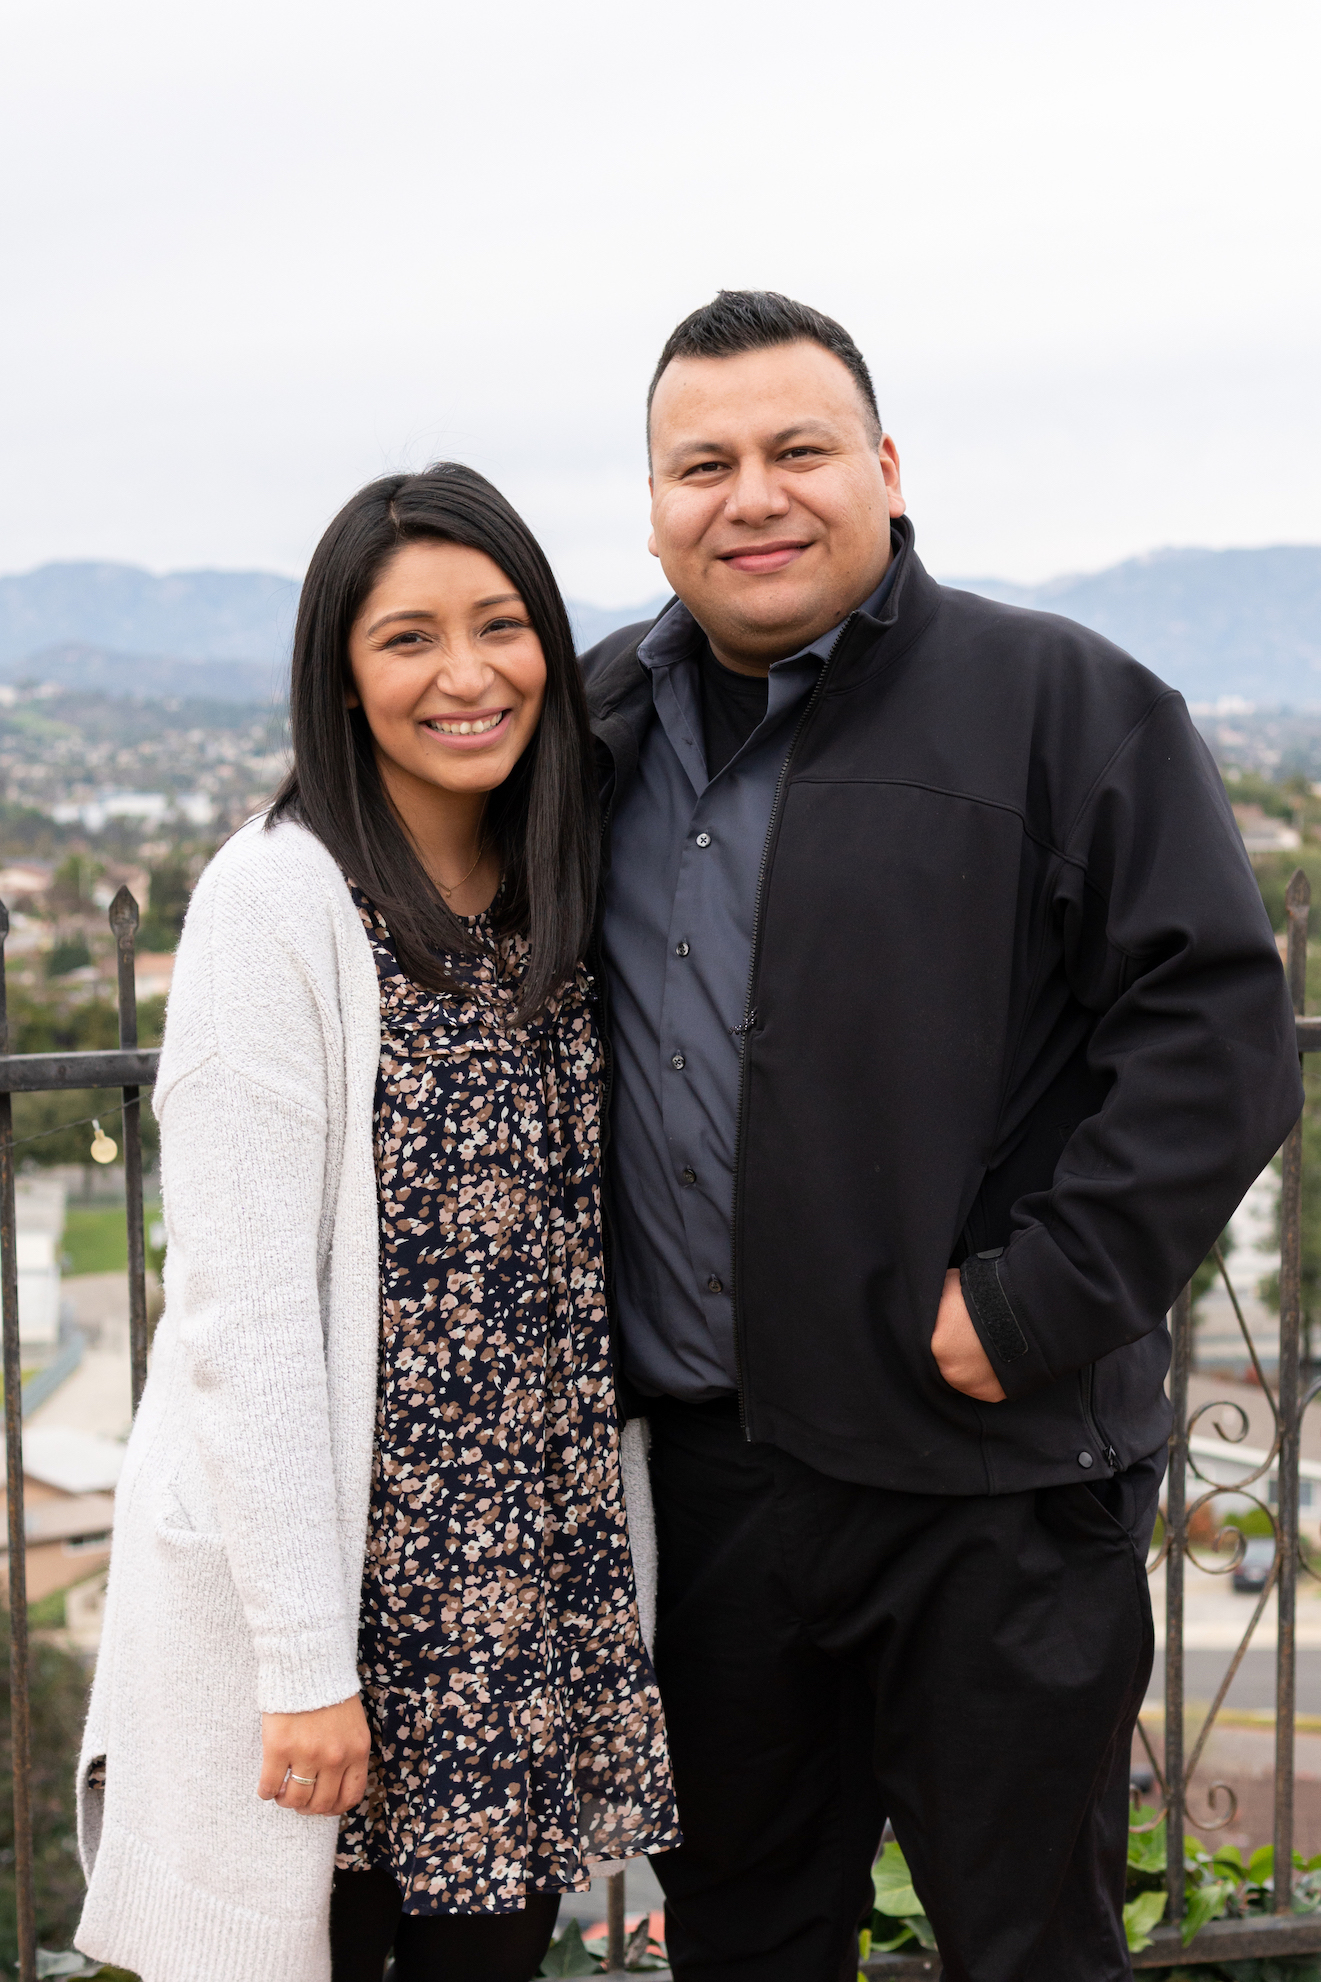 Sanchez Family is raising money on AdoptTogether for their adoption from United States.